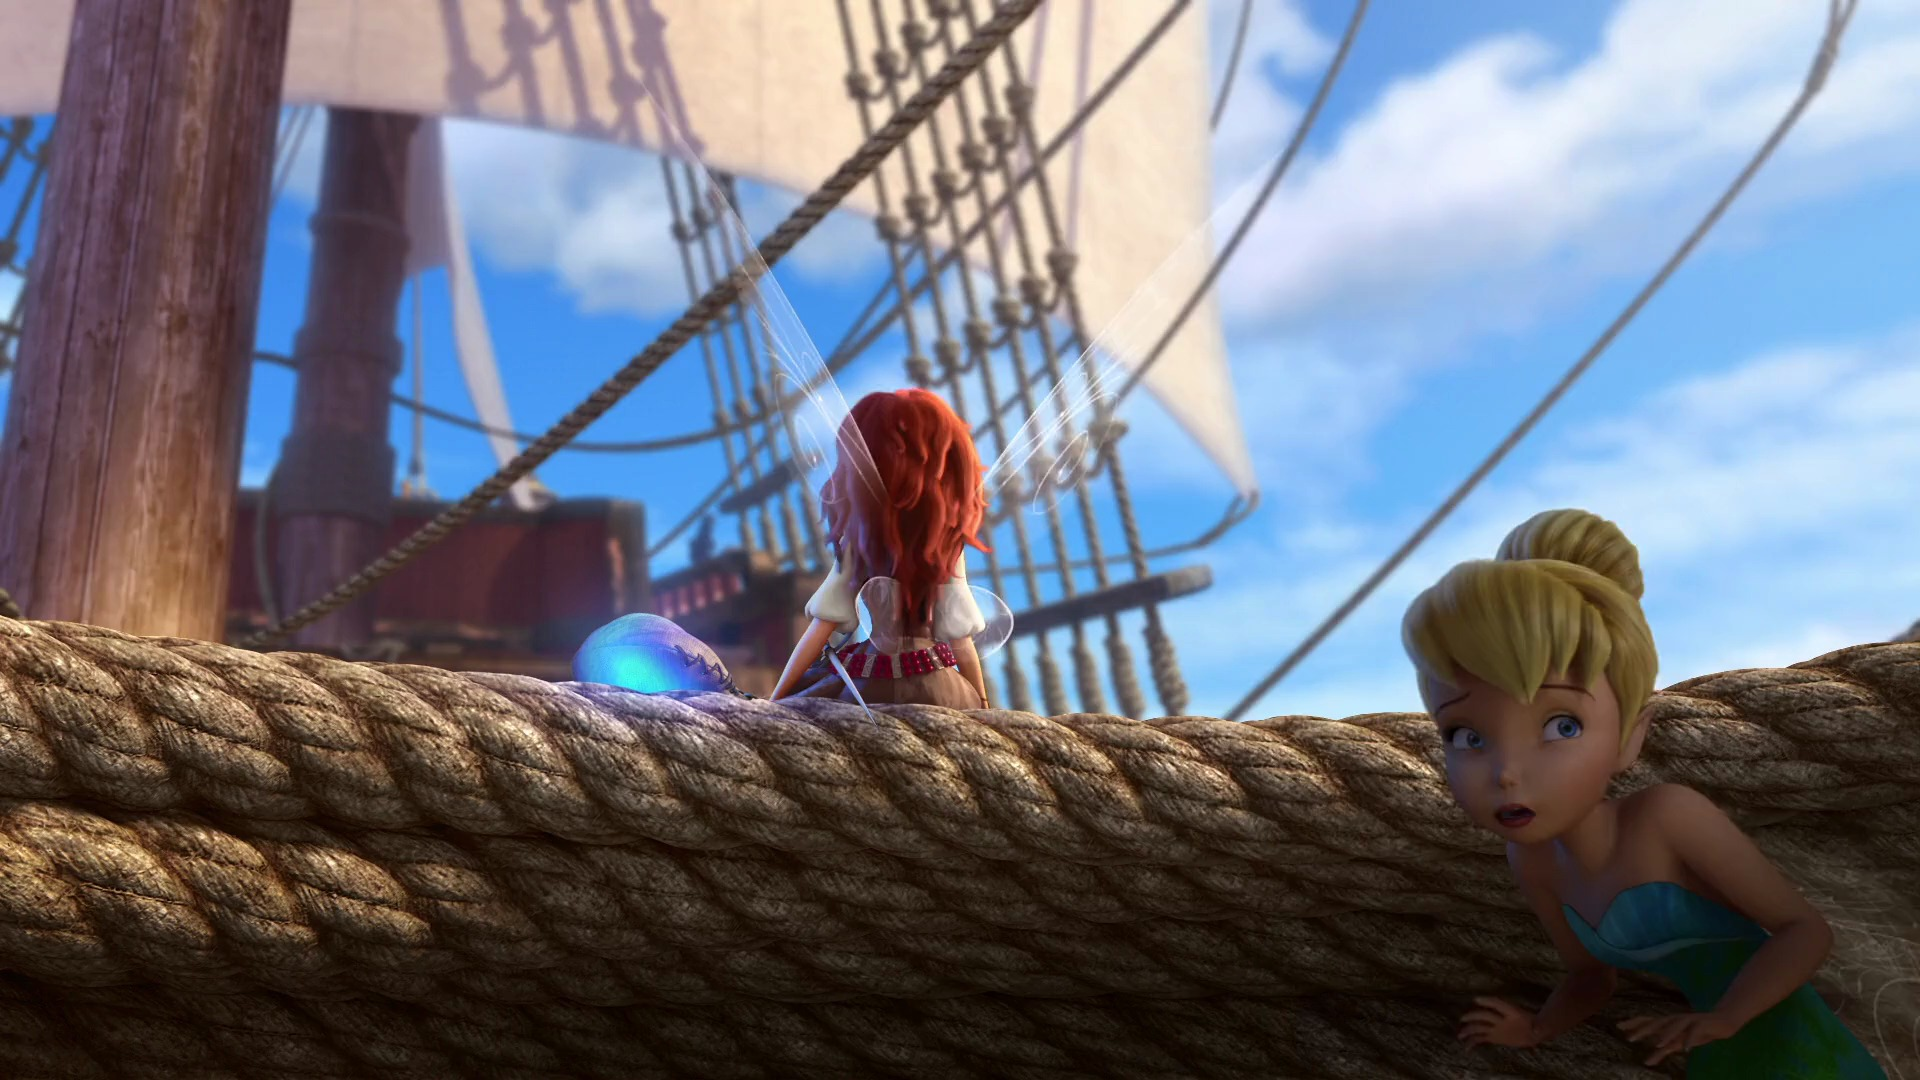 Download Tinker Bell And The Pirate Fairy 2014 1080p BluRay YIFY 1.23GB